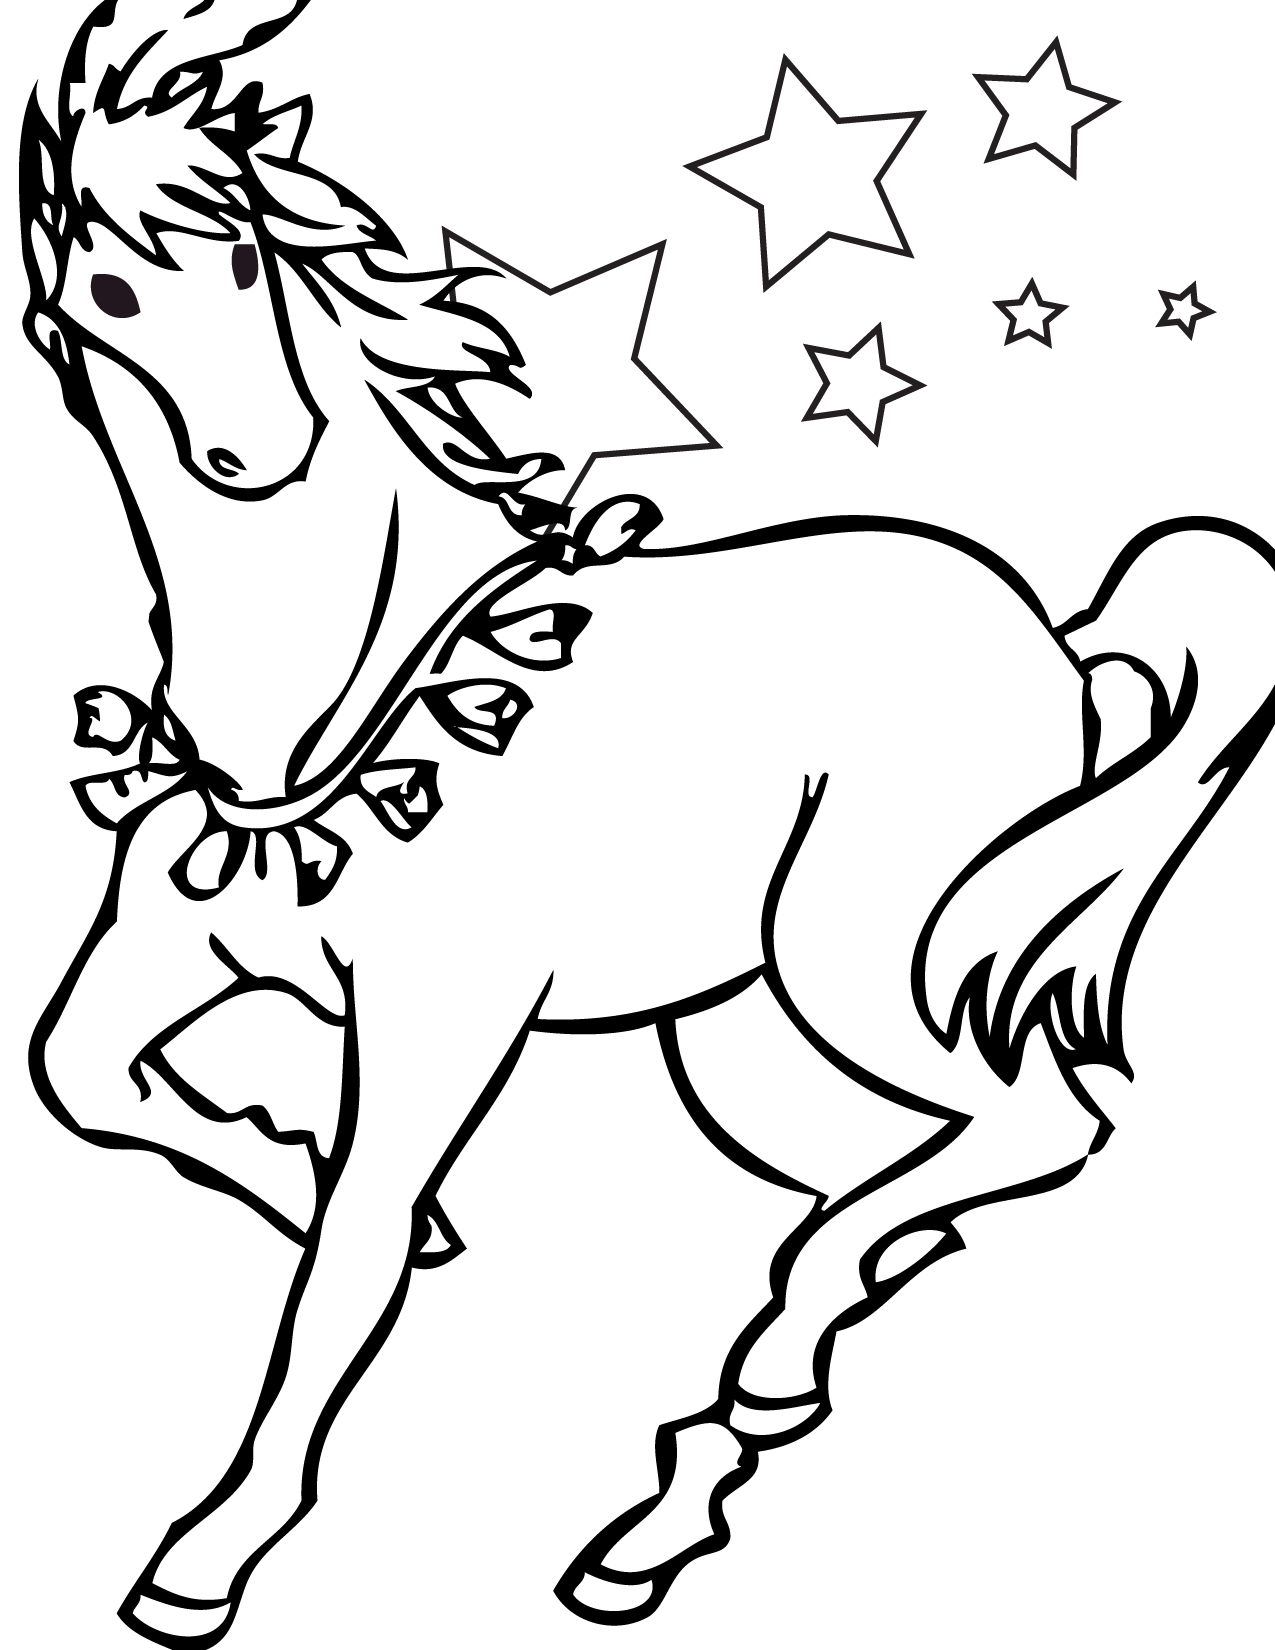 free coloring pages of horses - Free Coloring Pages For Horses